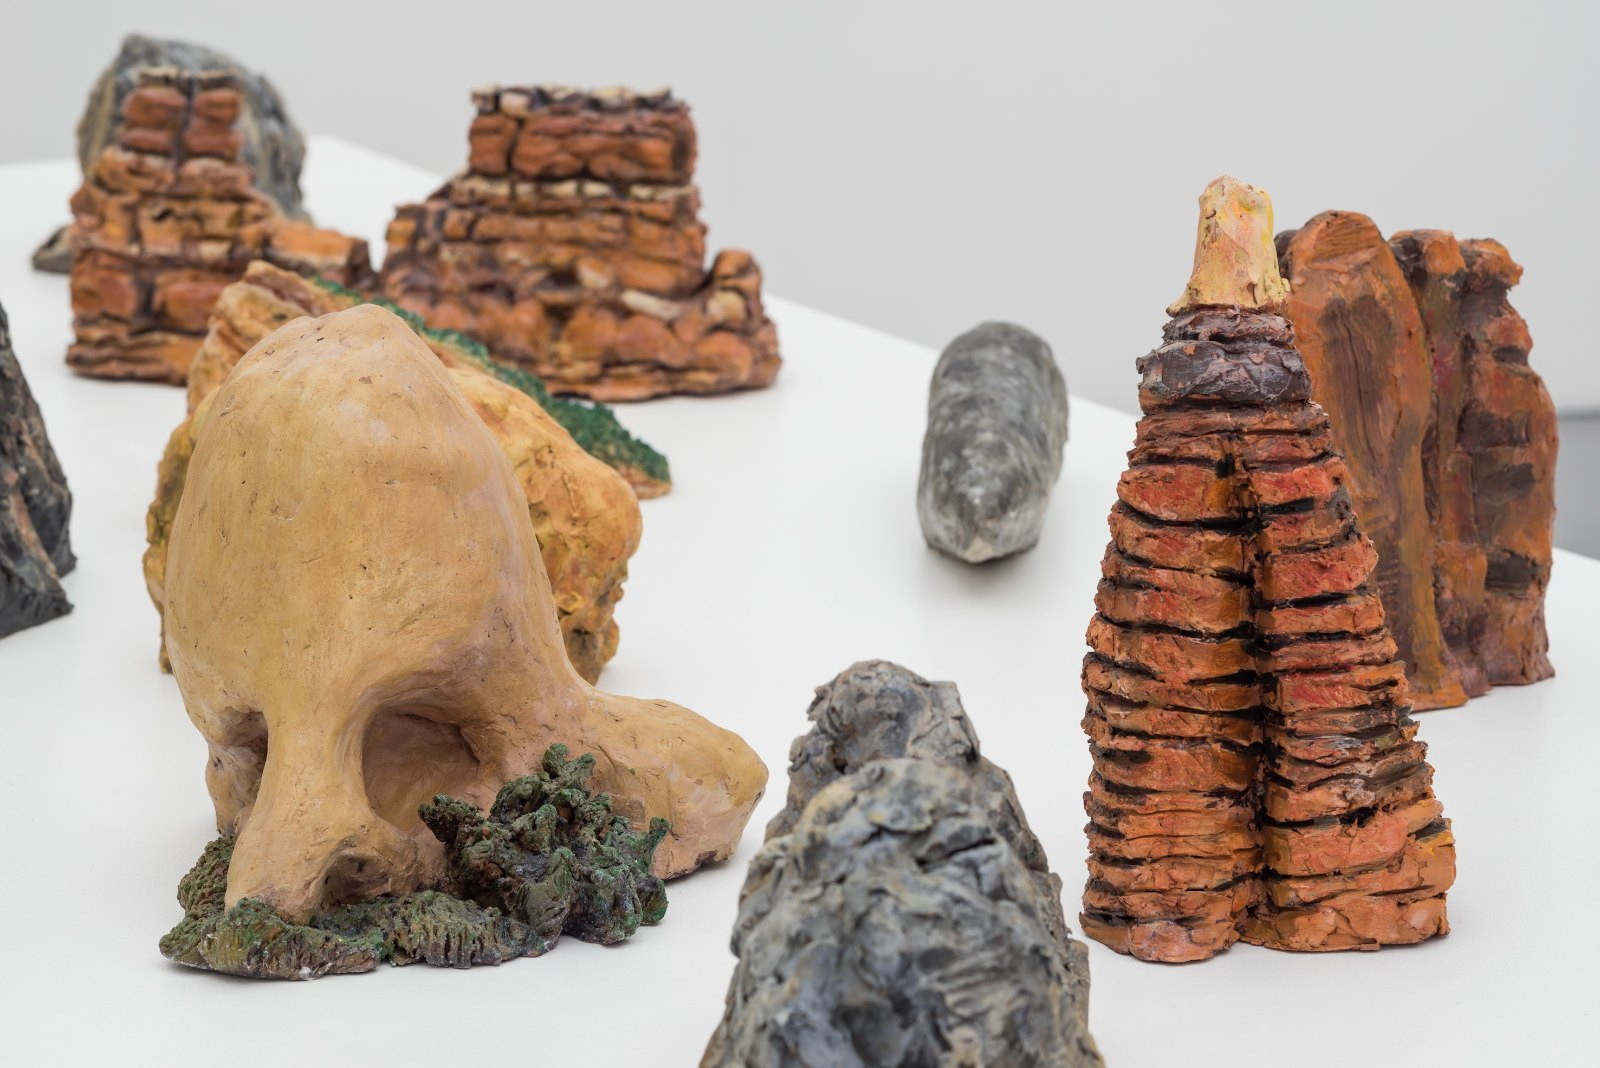 Detail of Frida Tebus', 13 Sculptures, 2009-2010, acrylic on clay, dimensions variable: Kitty Cat, Sleeping Camel, Three Penguins, Elephant Rock, Elephant Rock, Sinking Ship, Sailing Ship, Wooden Shoe, Cinderella Slipper, Chimney Rock, Cowboy Chaps, The Great Stone Face, Skull Rock